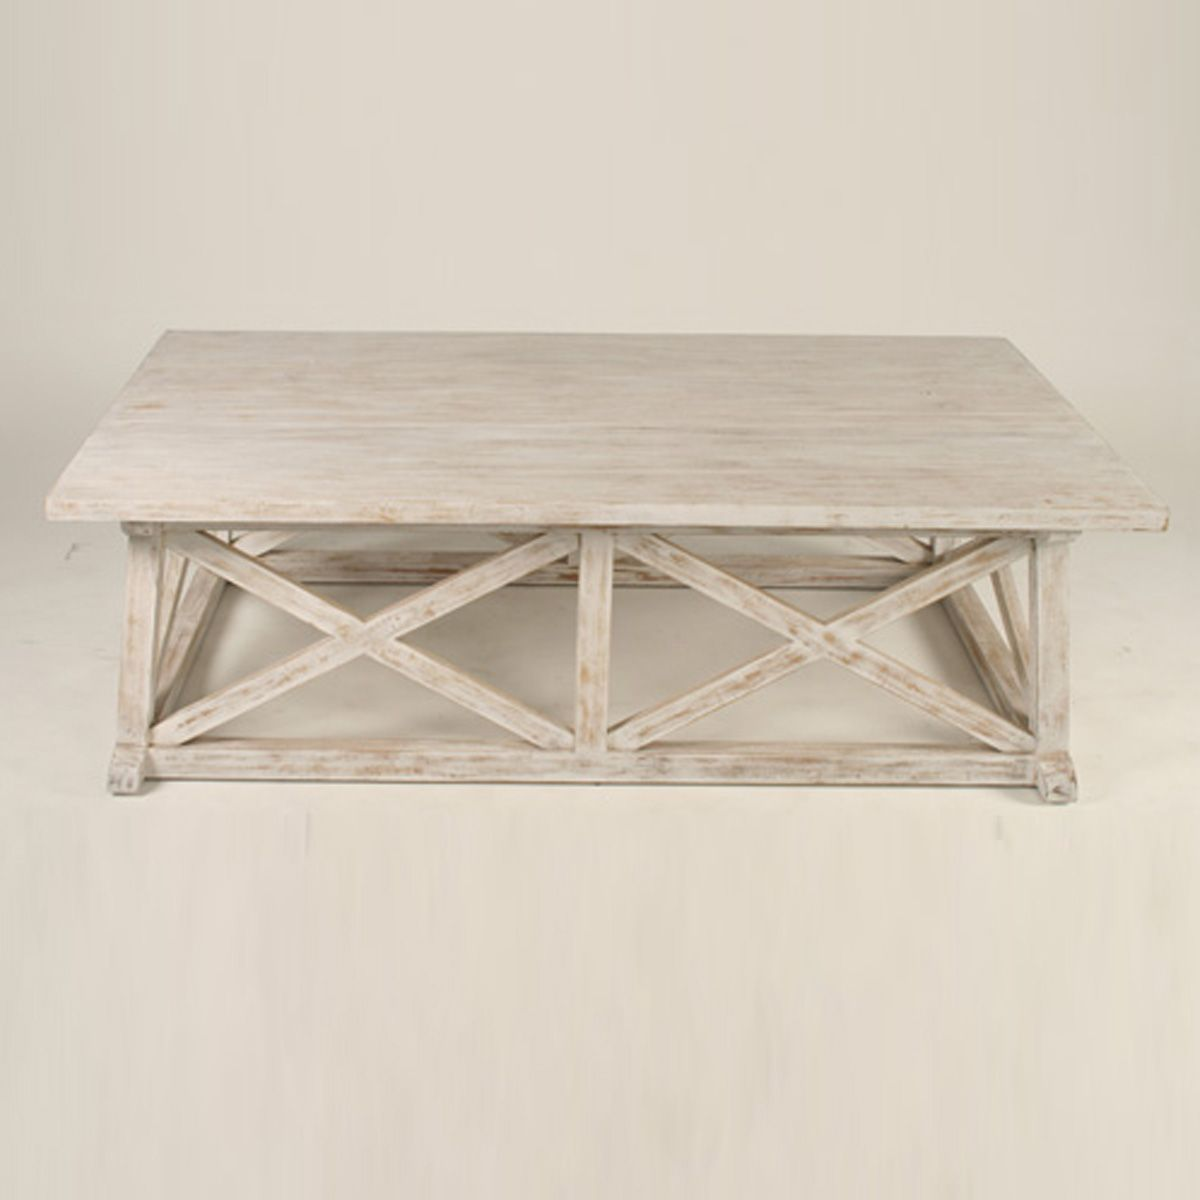 A new collection of white washed furniture has arrived at our boat house Whitewash coffee table